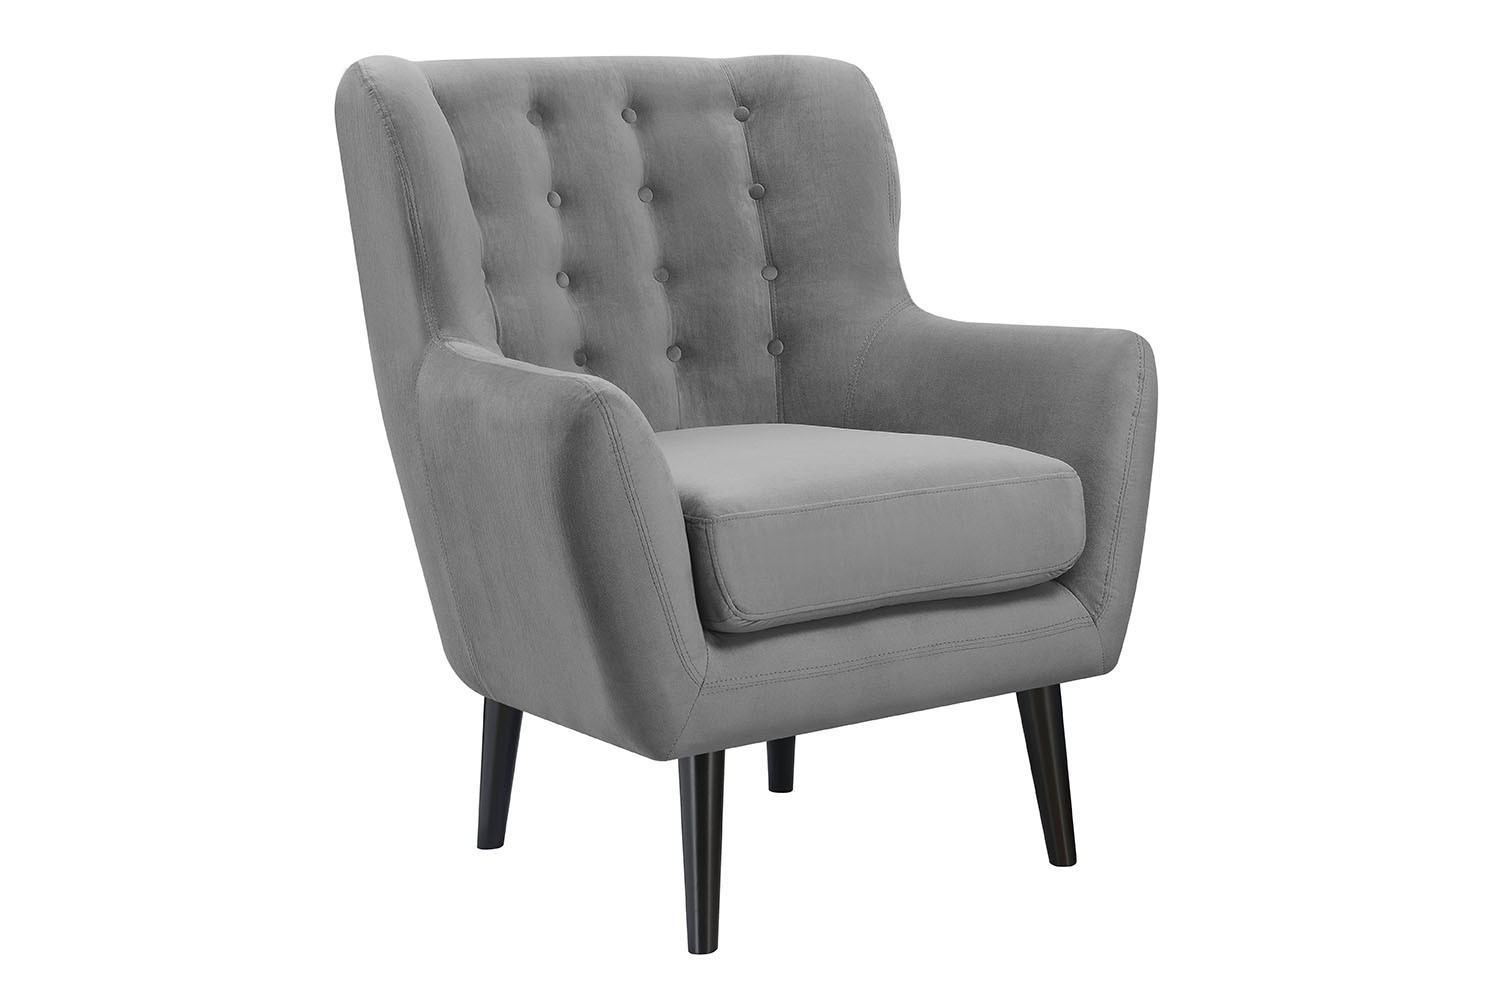 Lucy Gray Accent Chair | New Year's Sale On 500+ Products Throughout Lucy Grey Sofa Chairs (View 10 of 20)